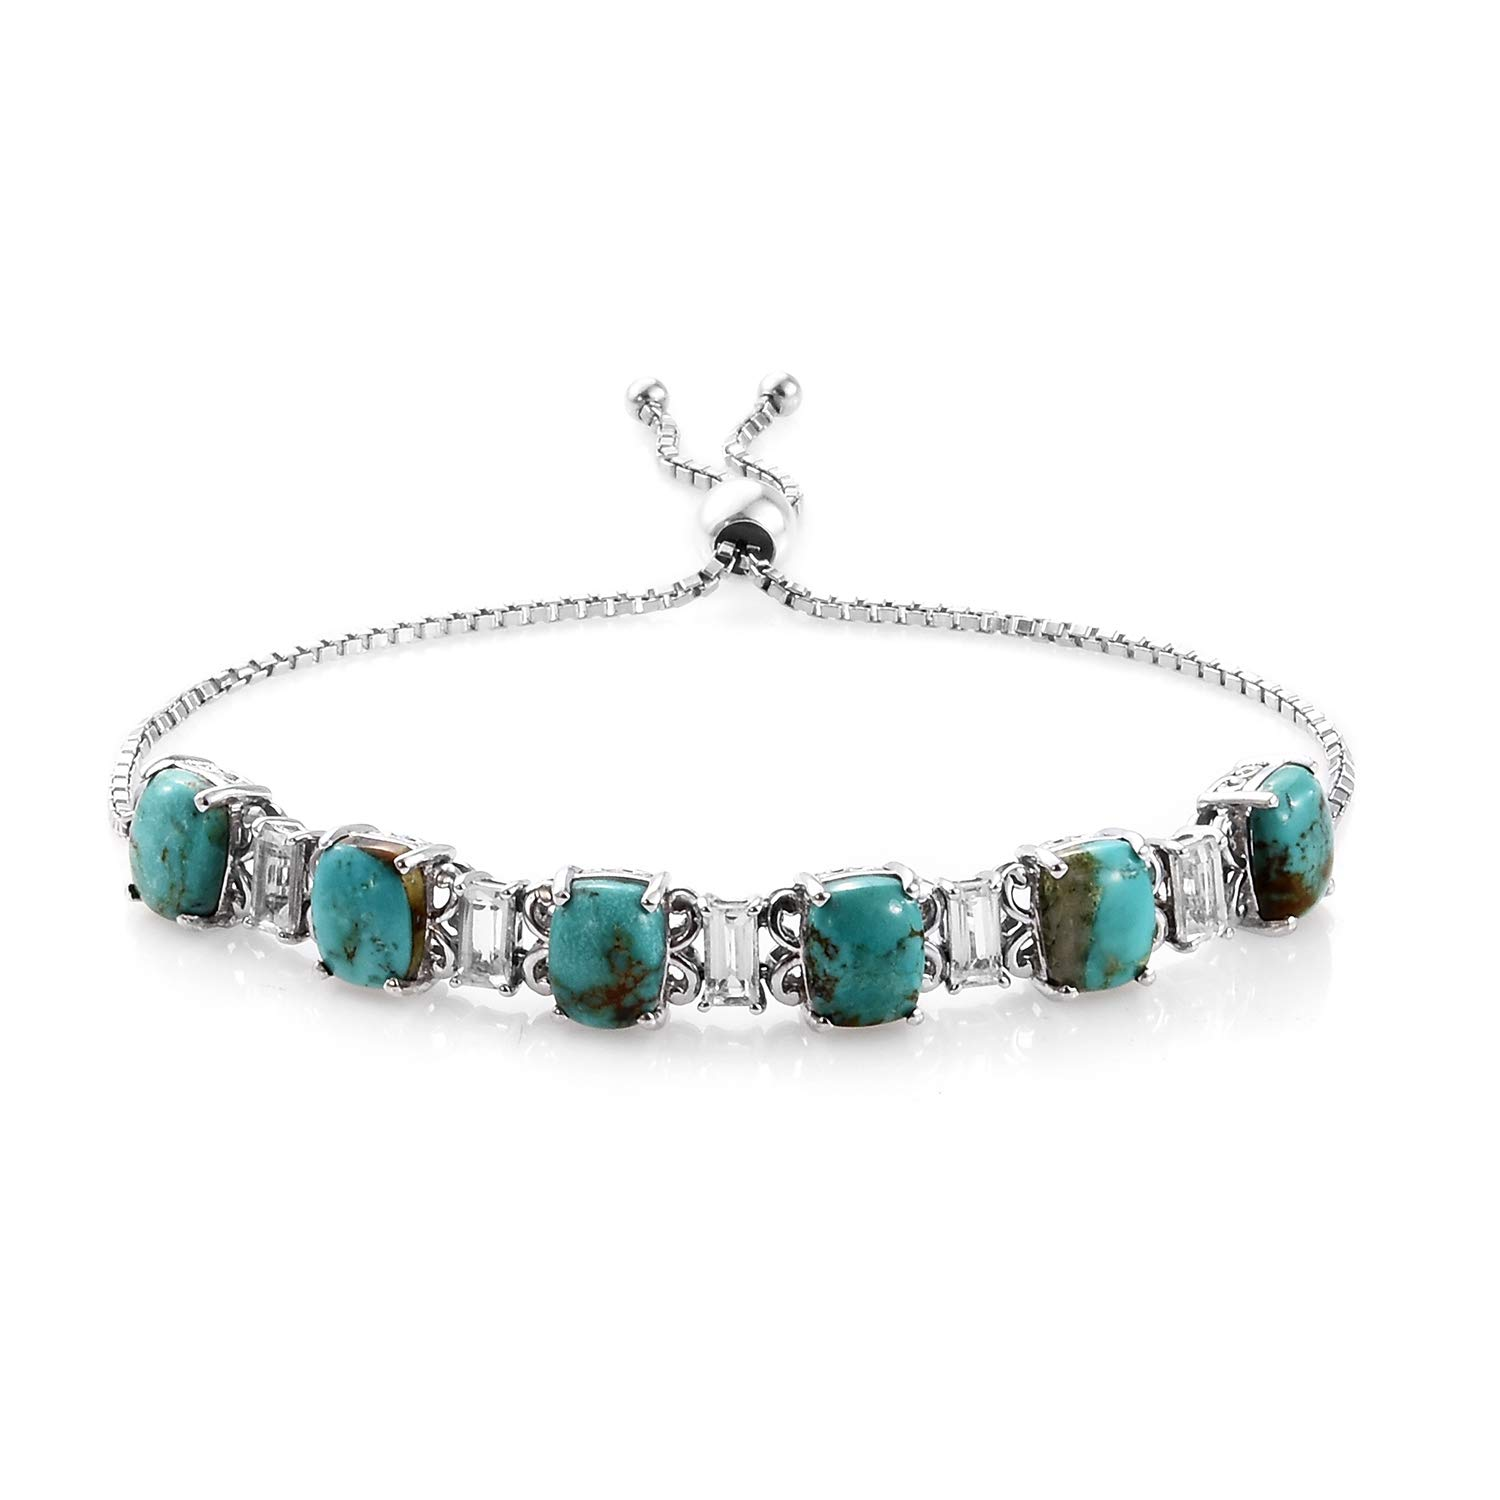 925 Sterling Silver Platinum Plated Turquoise White Topaz Bolo Tennis Bracelet for Women Jewelry Gift (Adjustable)